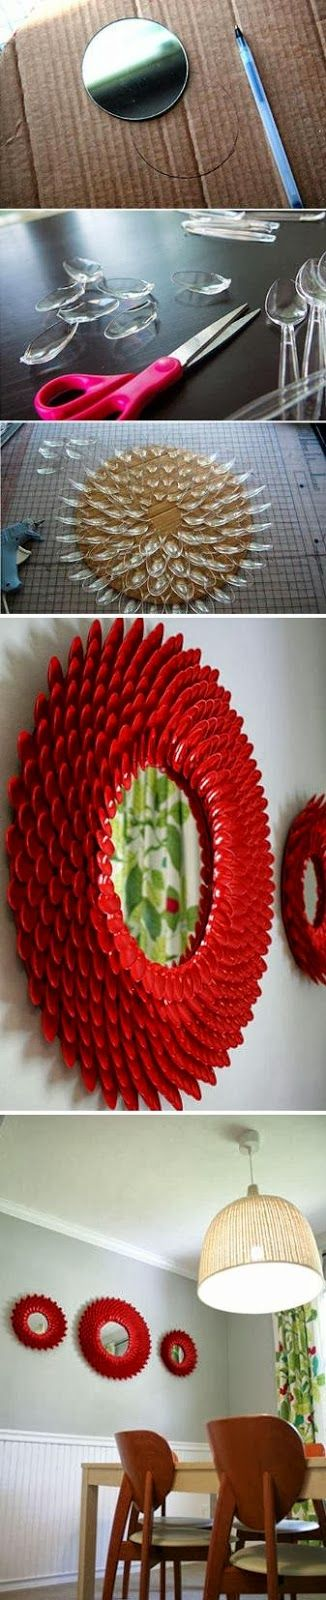 Make a Mirror from Plastic Spoons (( or musselshells ))